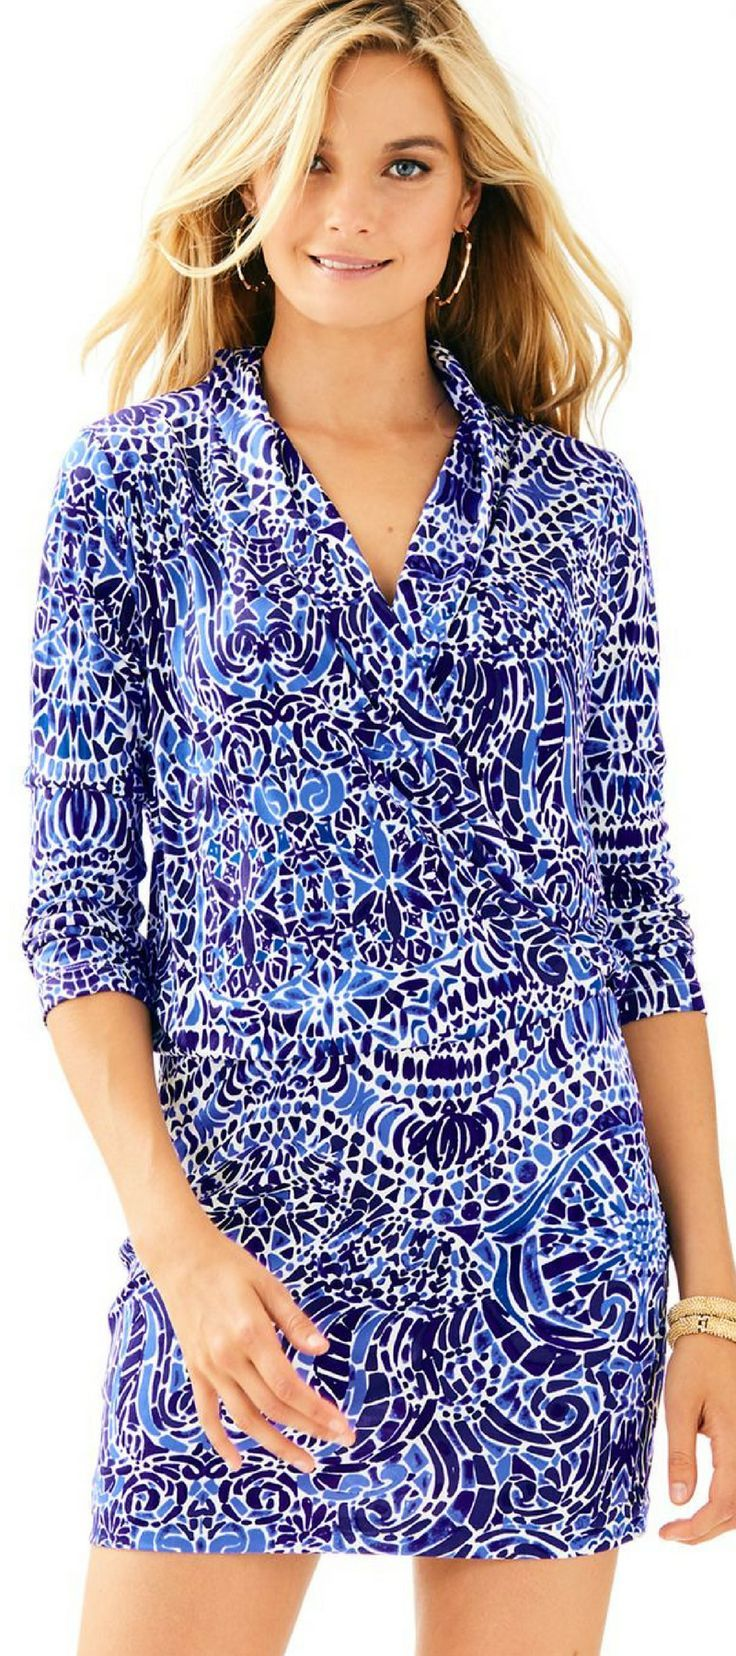 9dfa669a19a632 A silky dress is the definition of a date night outfit. The Lilly Pulitzer  Felizia